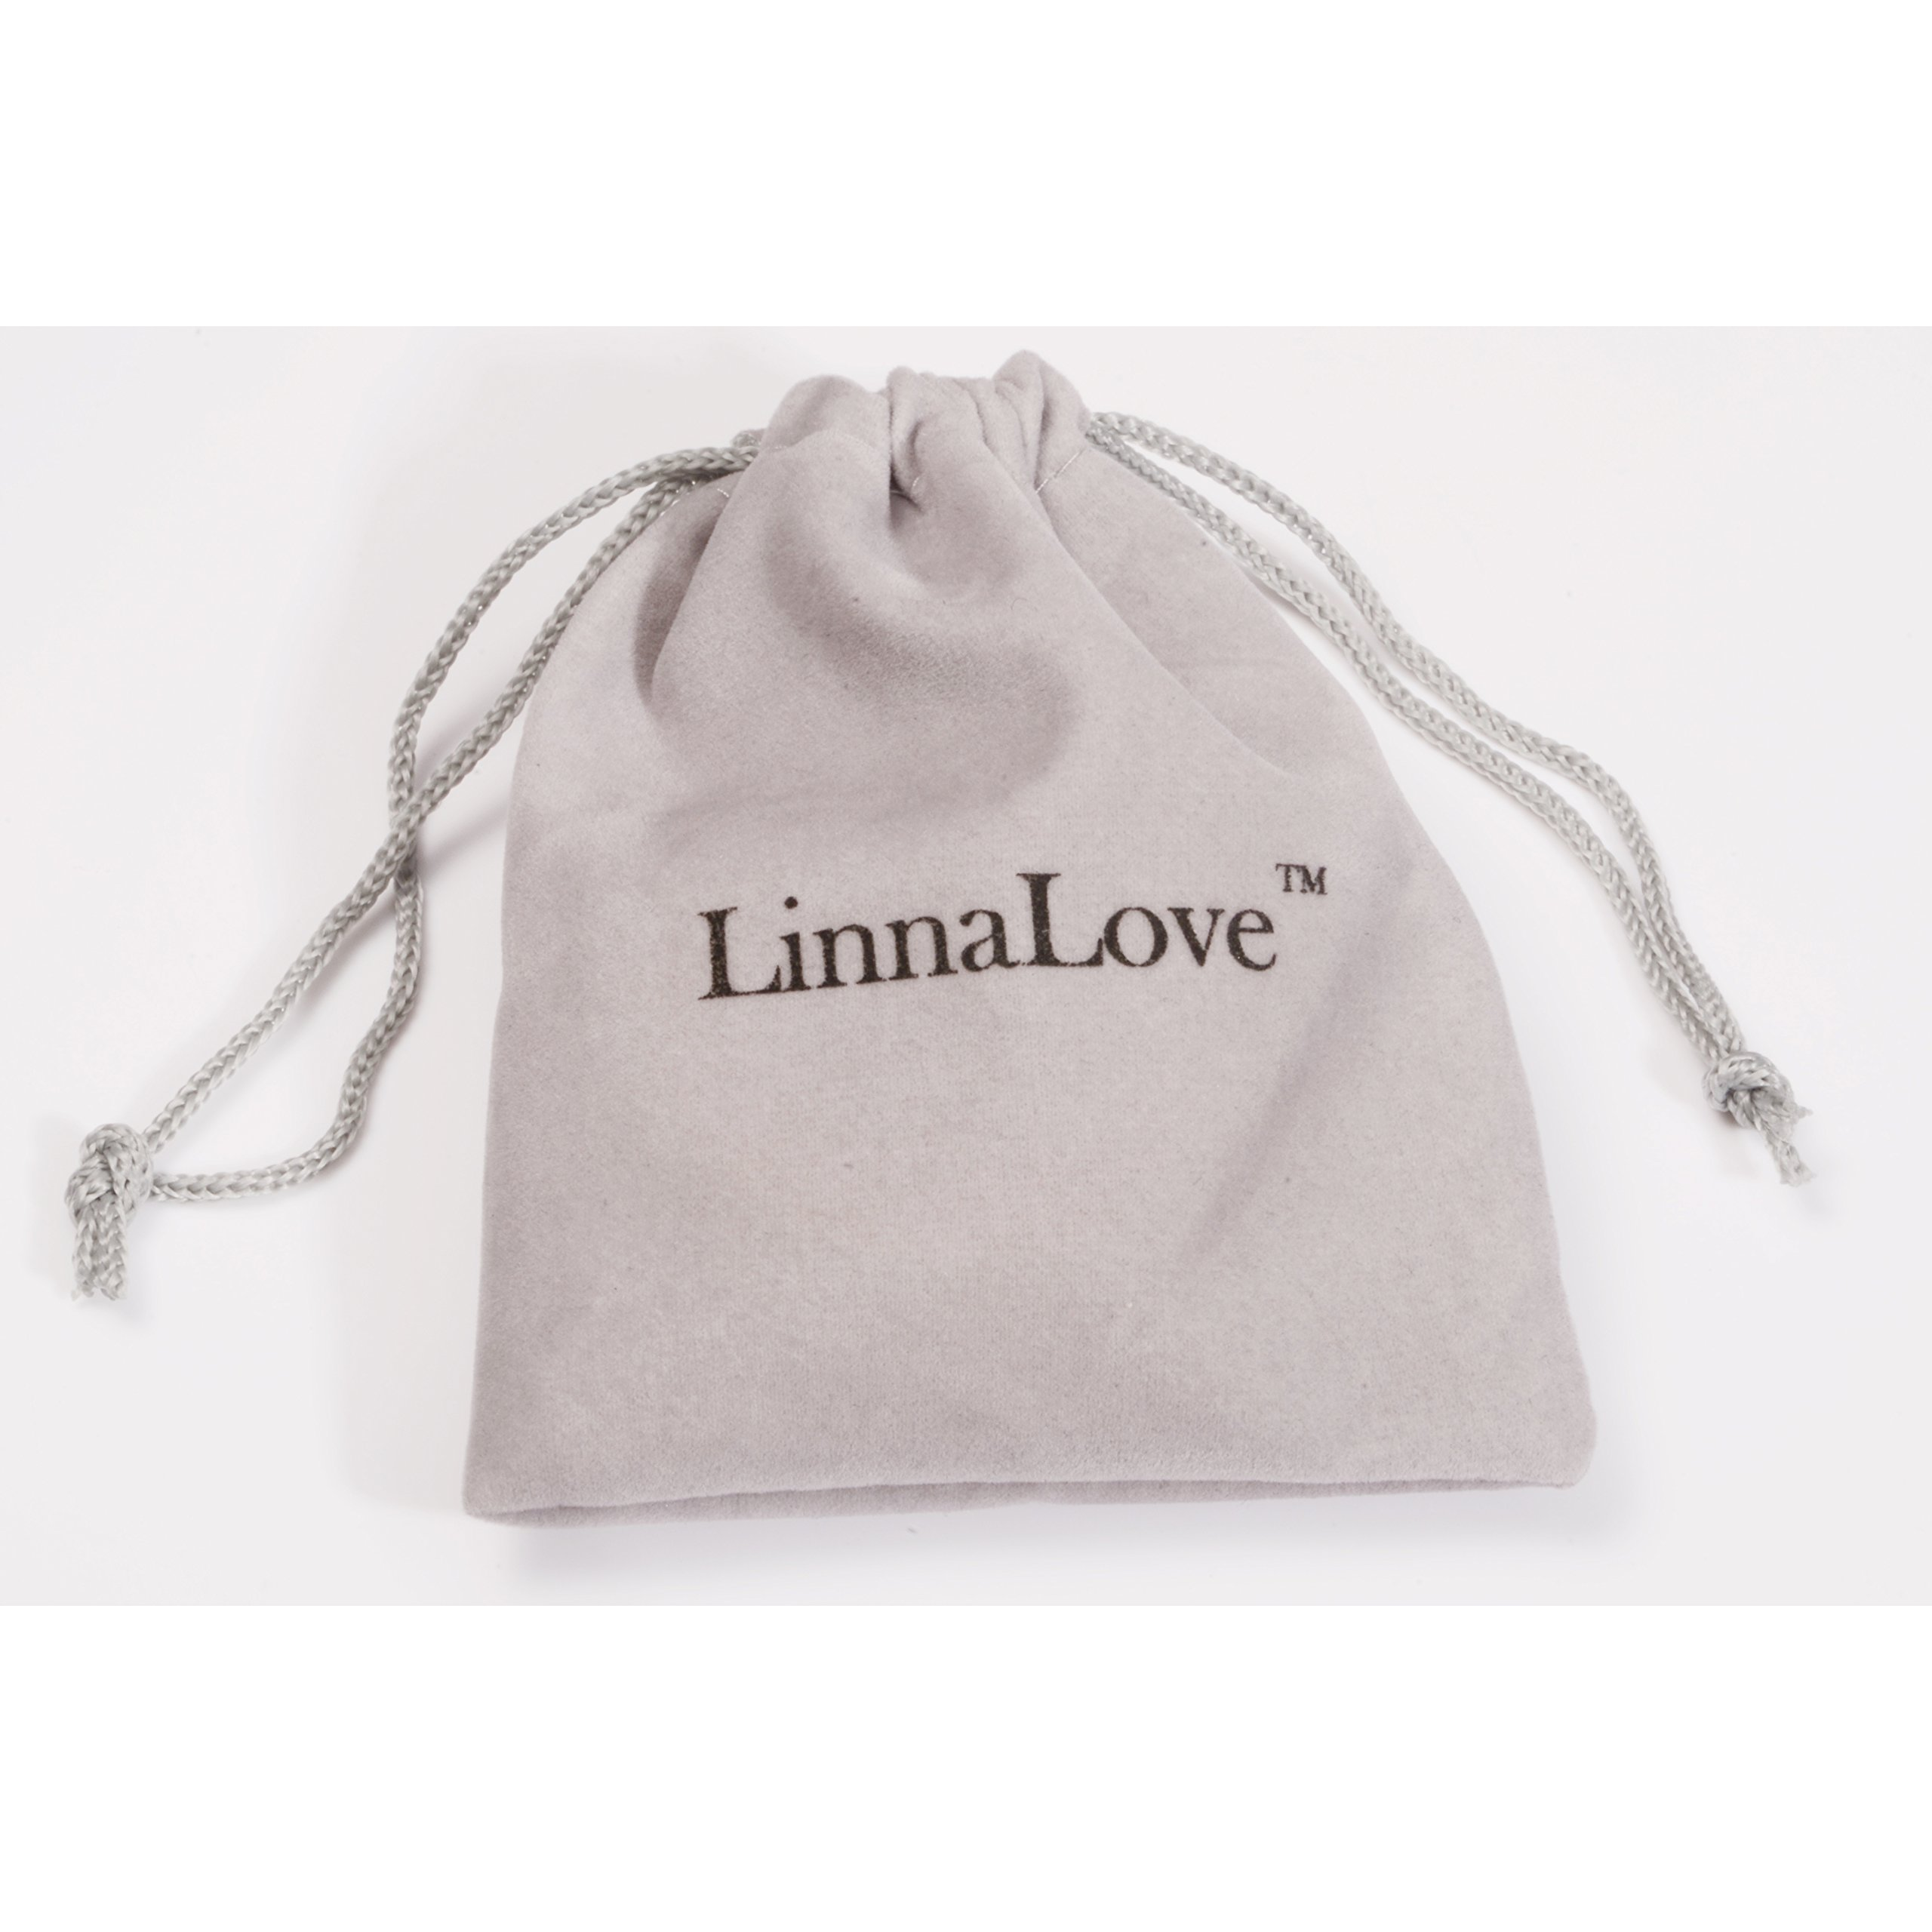 linnalove-Pre-Engraved Simple Rolo Chain Medical id Bracelet for Women & Girl-PACEMAKER by linnalove (Image #5)